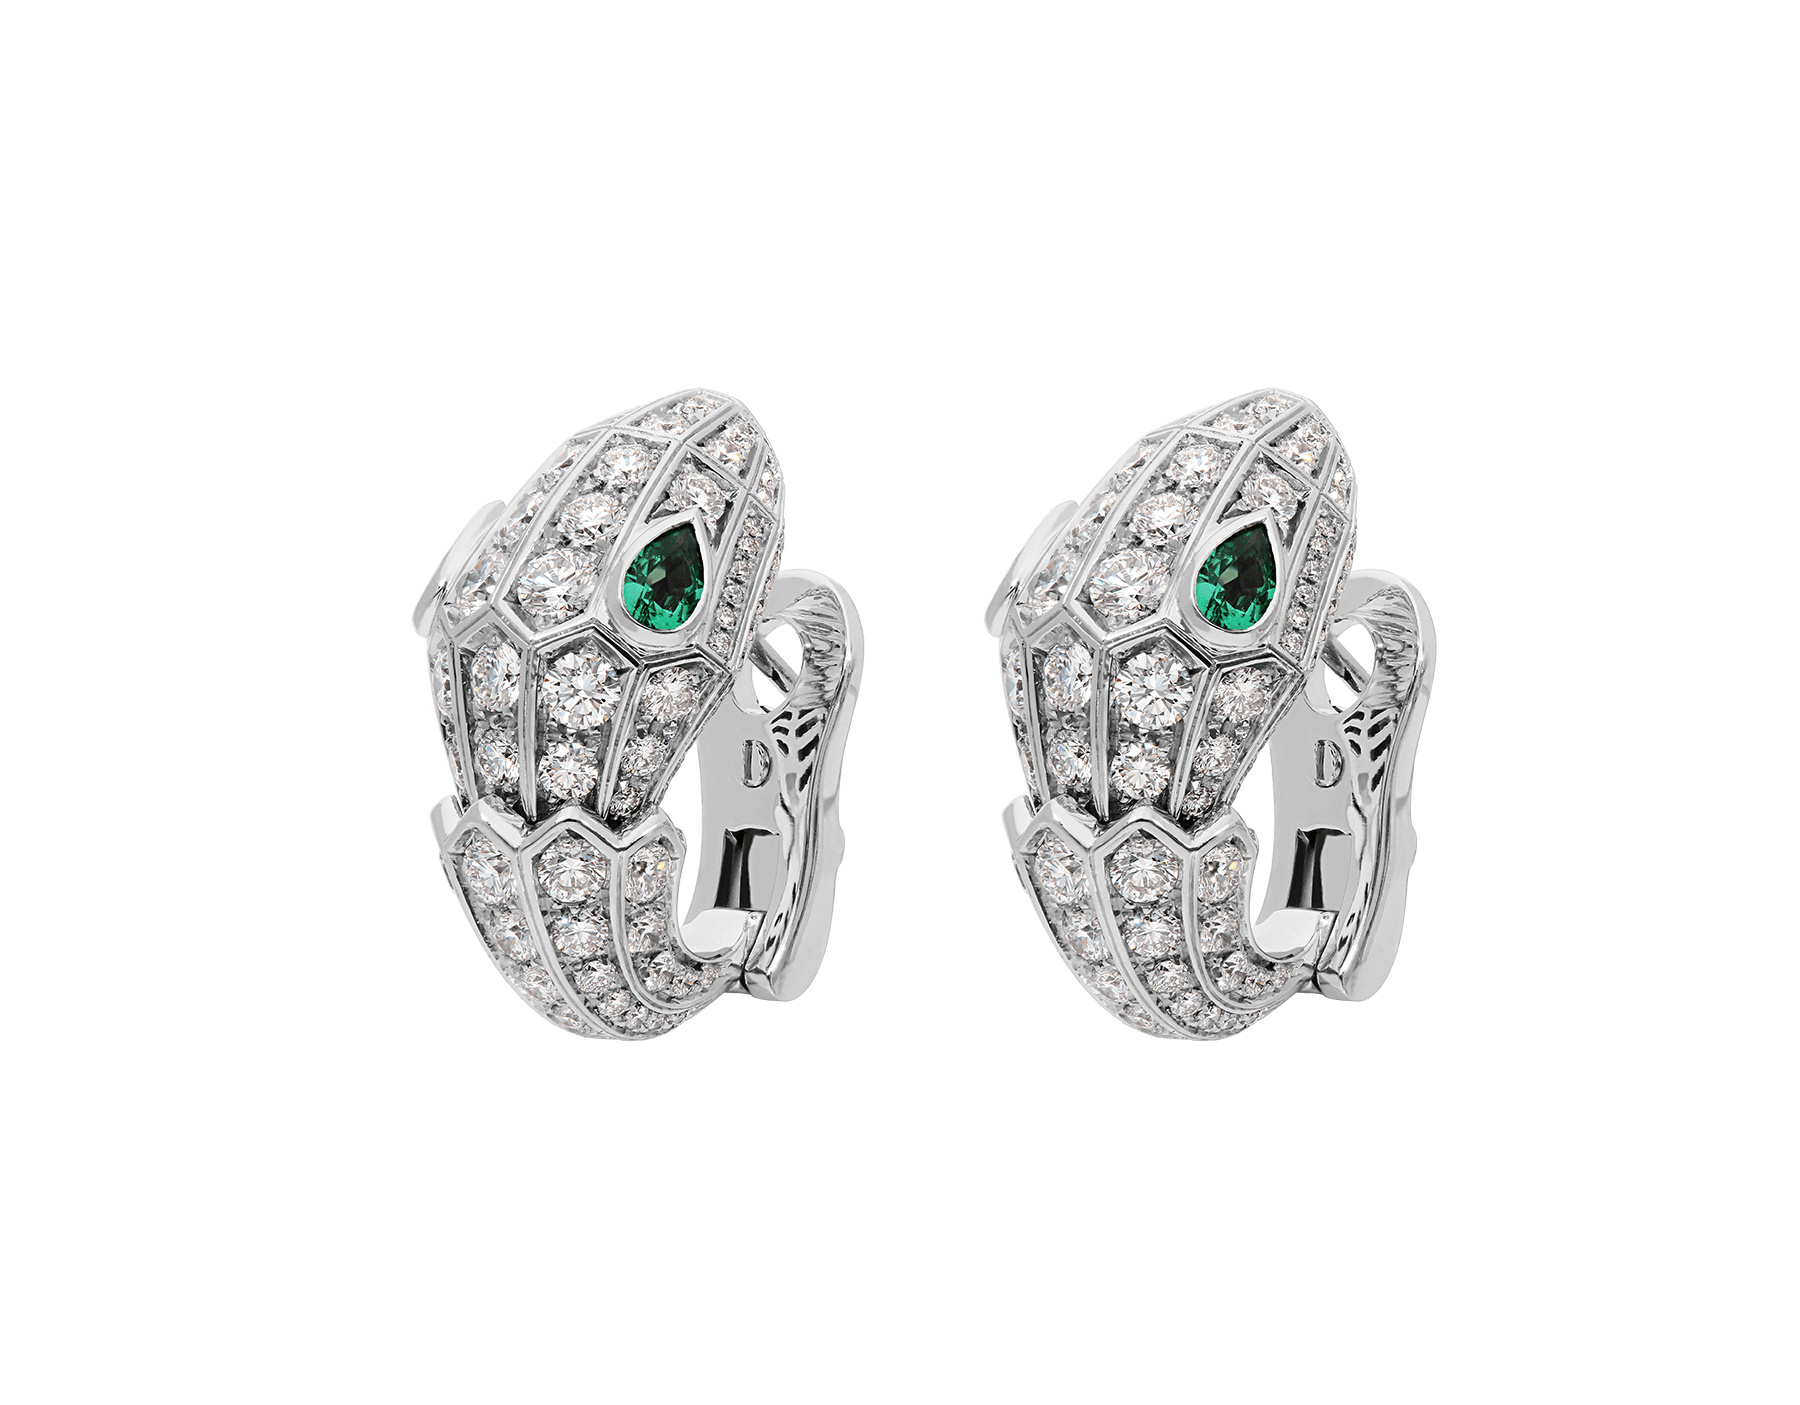 Serpenti 18 kt white gold earrings set with pavé diamonds (3.22ct) and two emerald eyes. (0.51ct) 354702 image 2